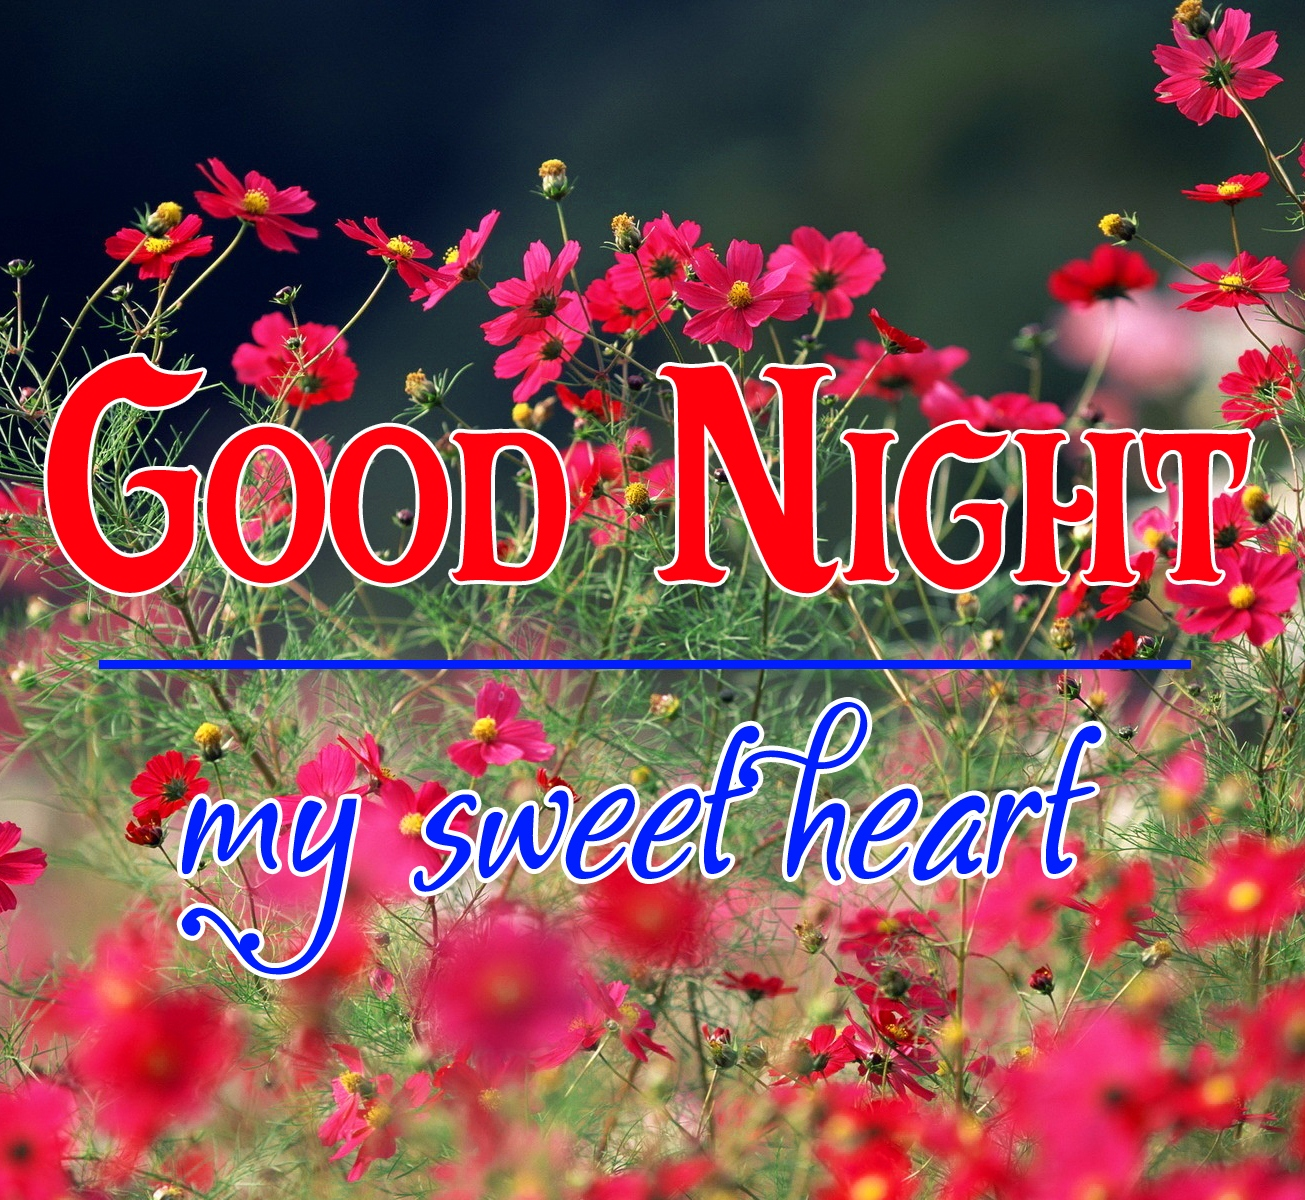 Good night wallpaper hd 106